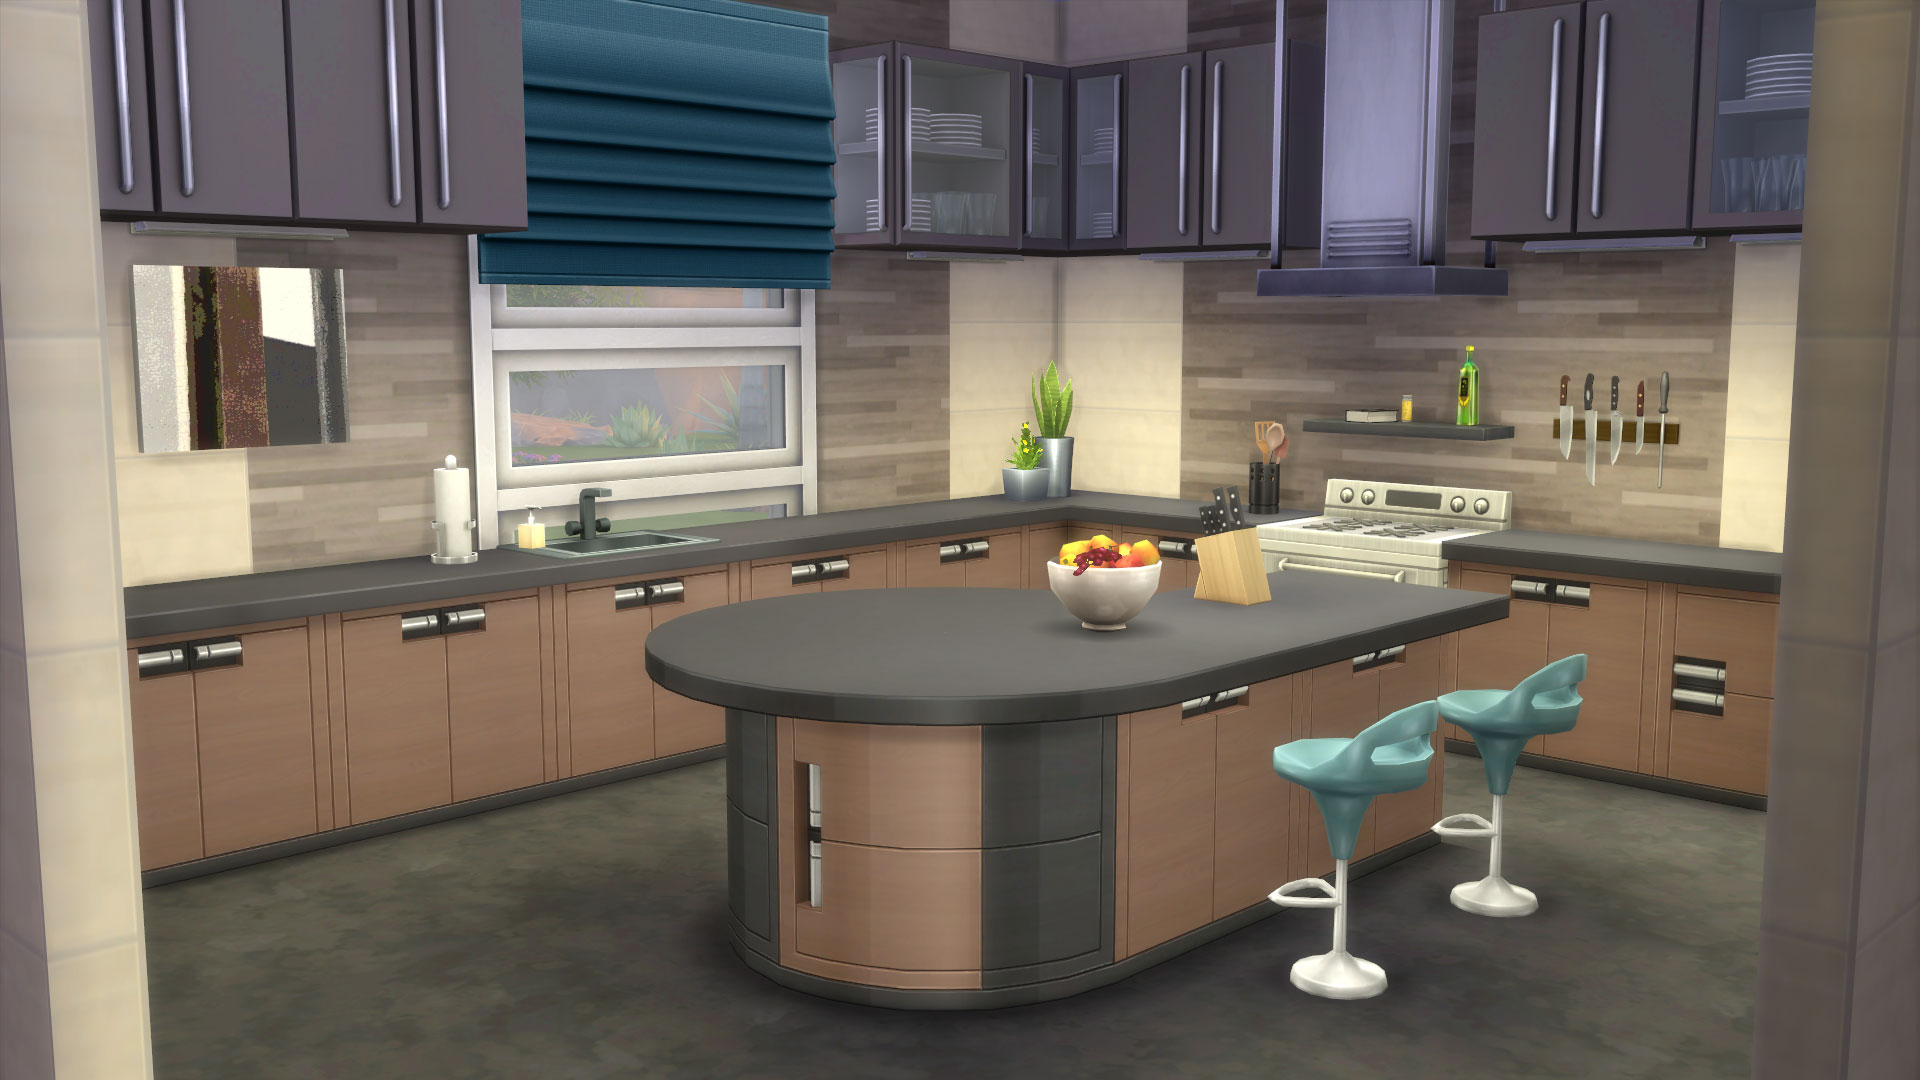 The sims how to create an amazing kitchen in the sims 4 for Sims 3 kitchen designs